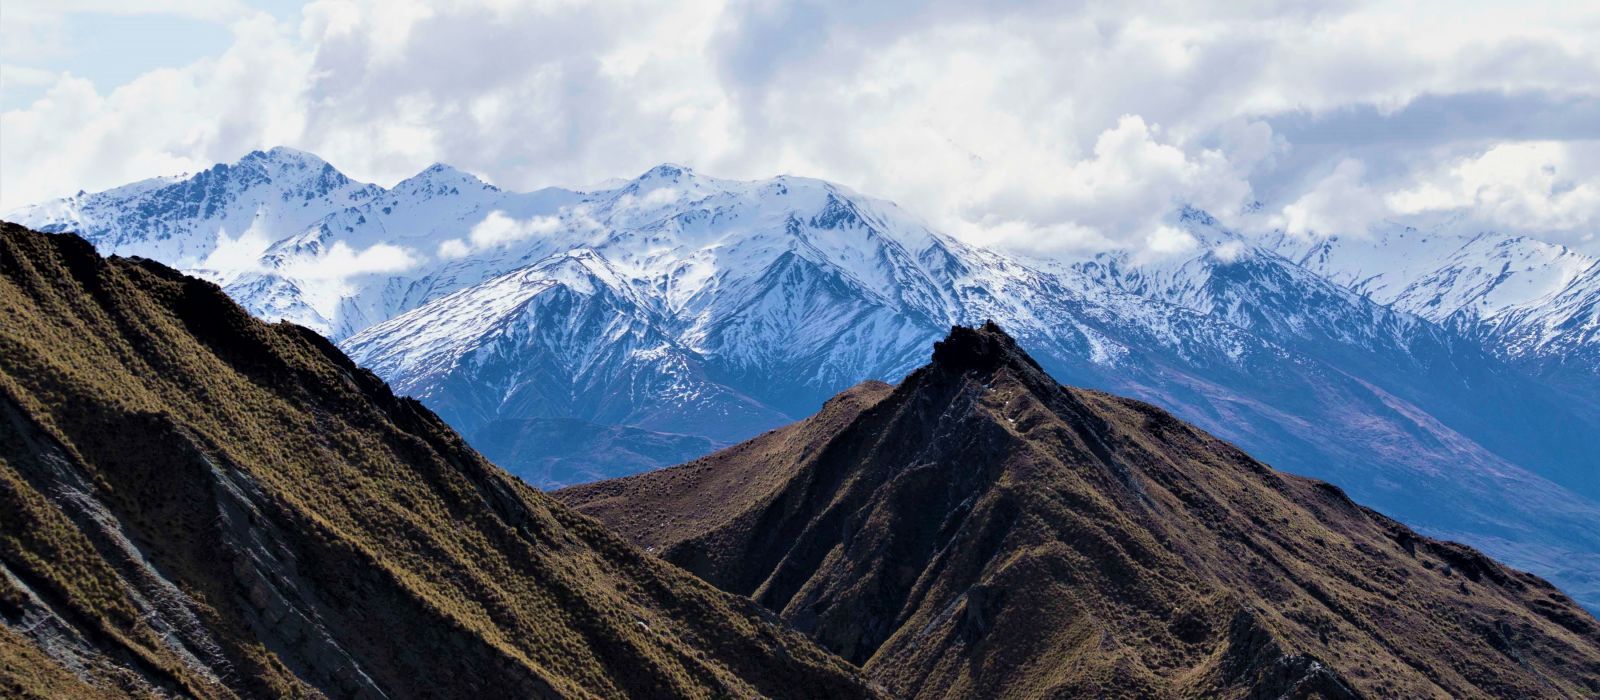 Landscapes New Zealand Mountains Snow capped mountains Roys